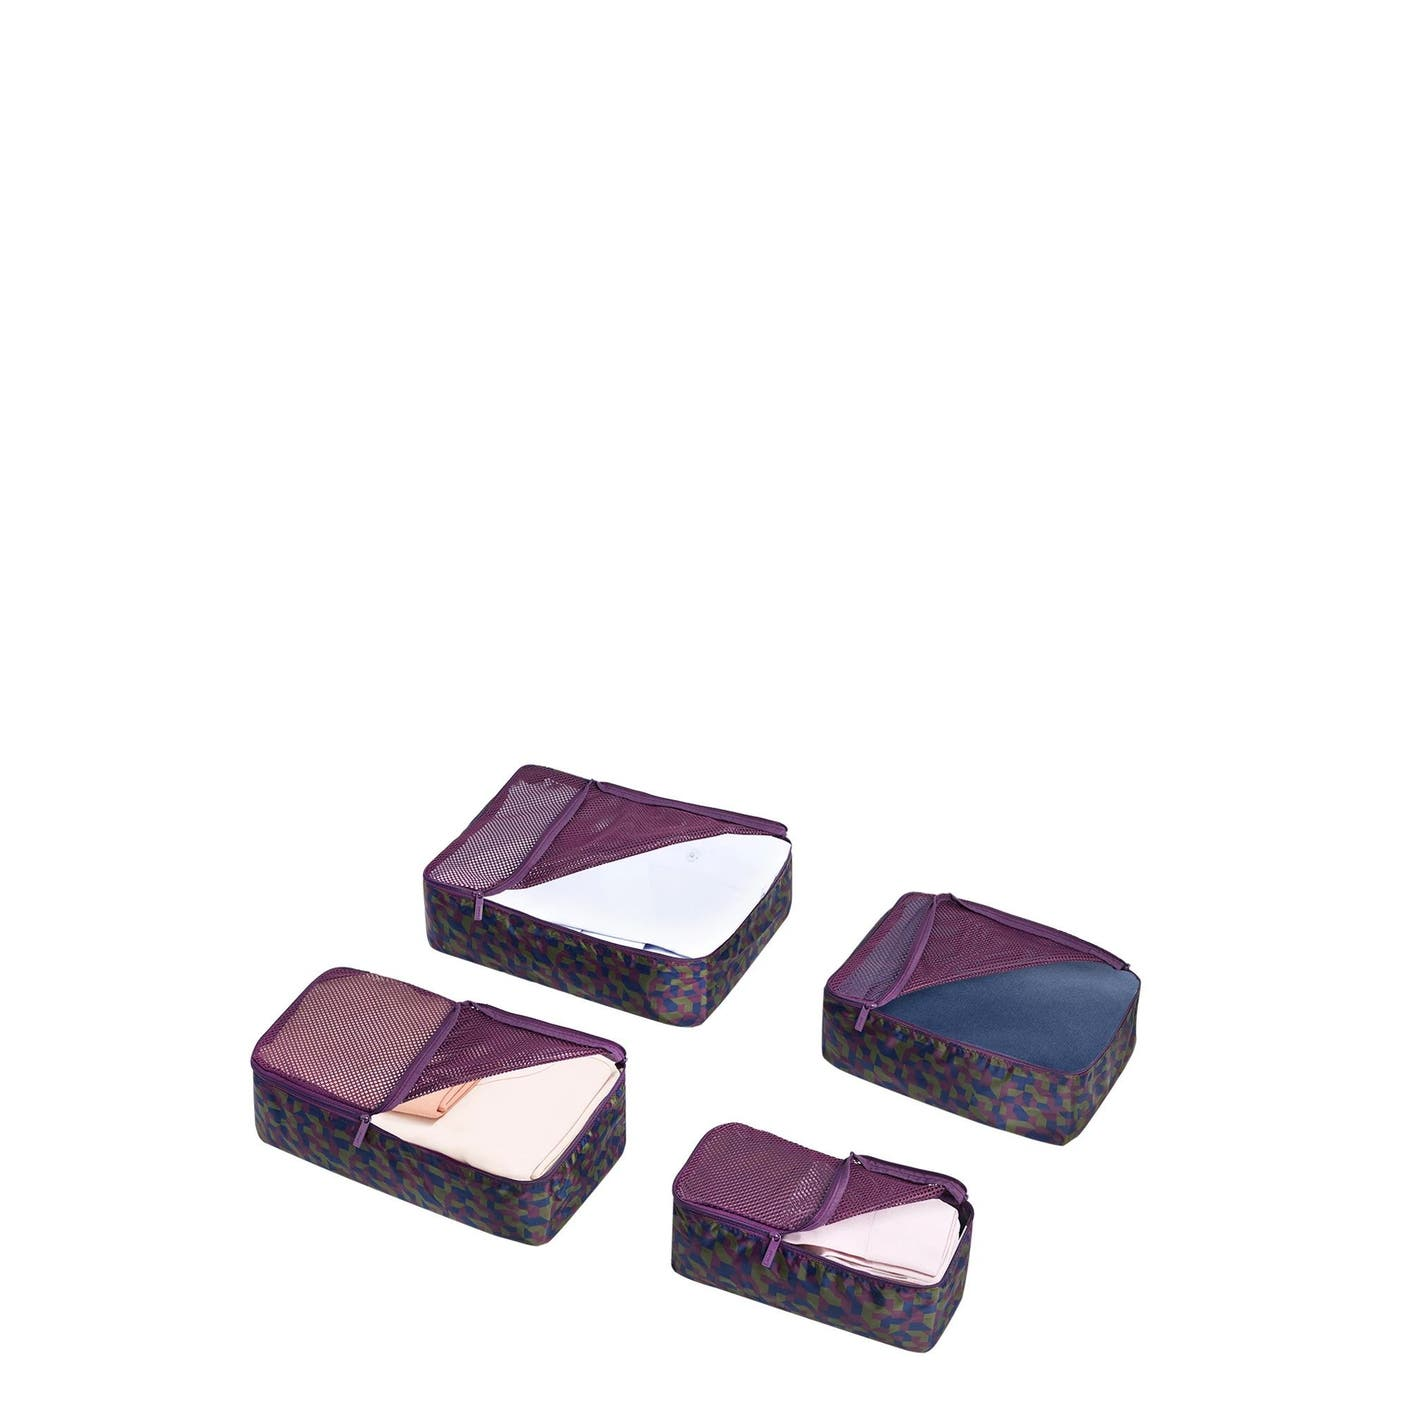 The Insider Packing Cubes (Set of 4)